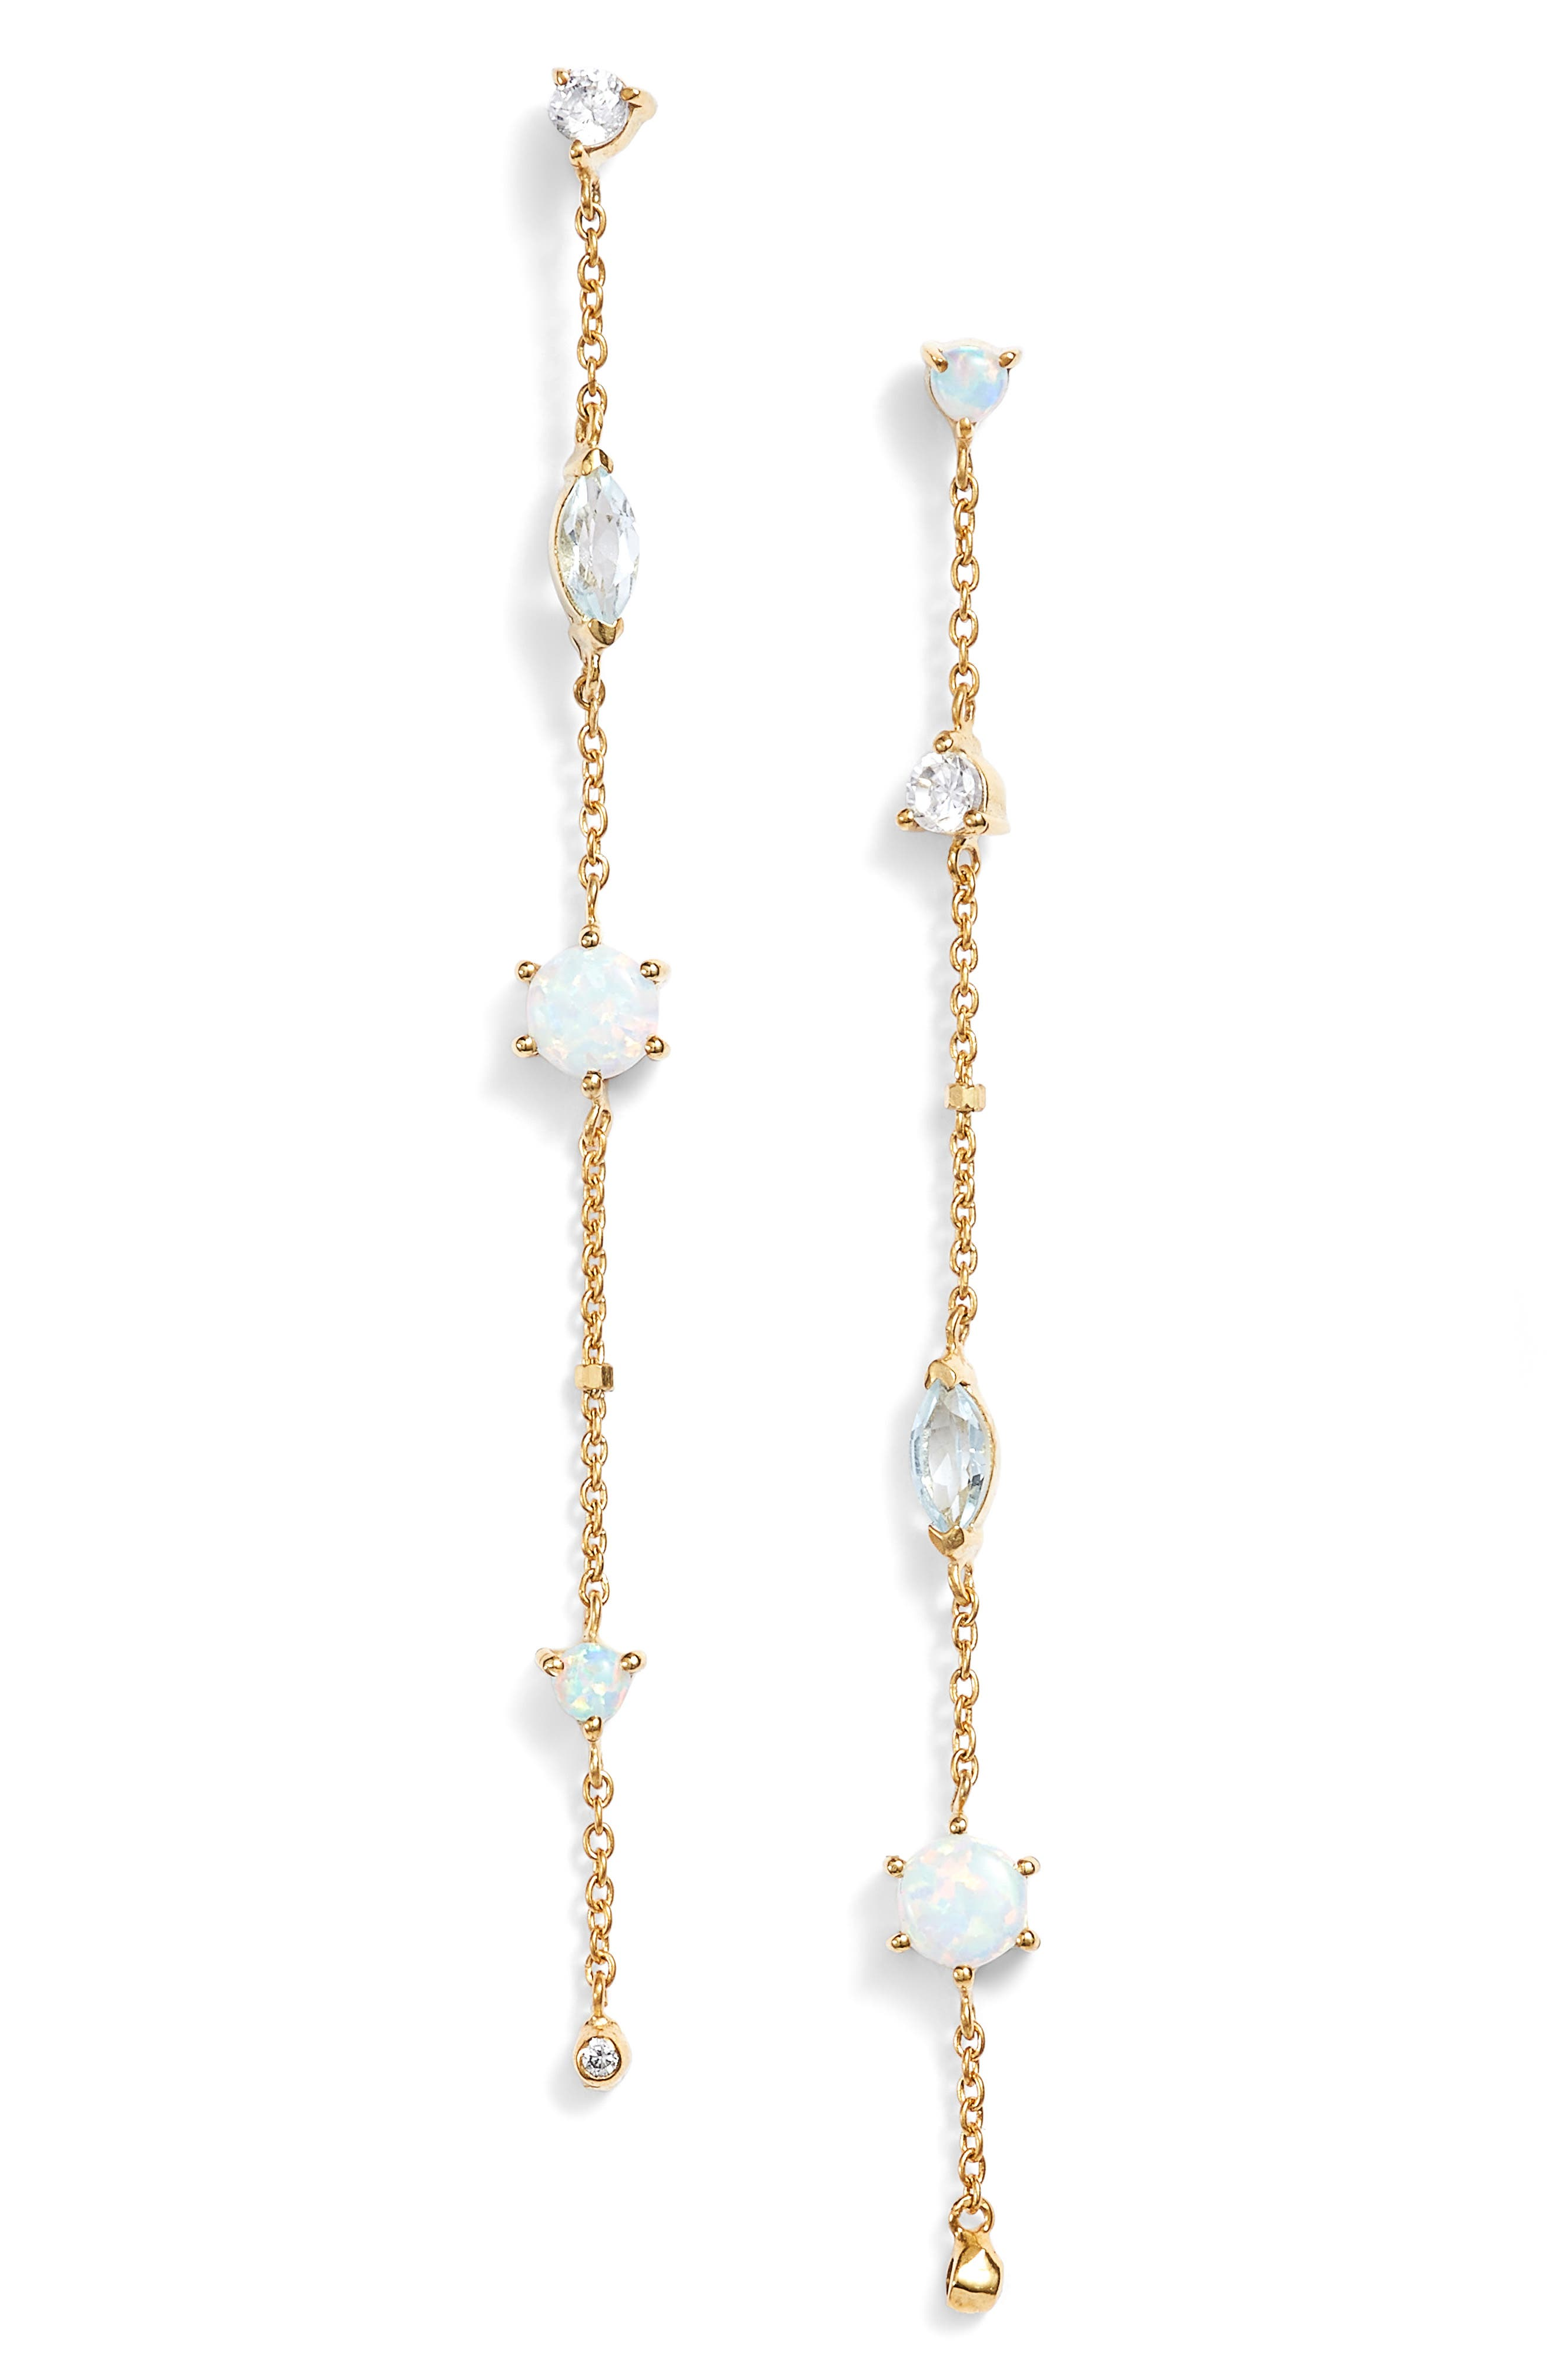 Sydney Multistone Chain Earrings,                         Main,                         color, Gold